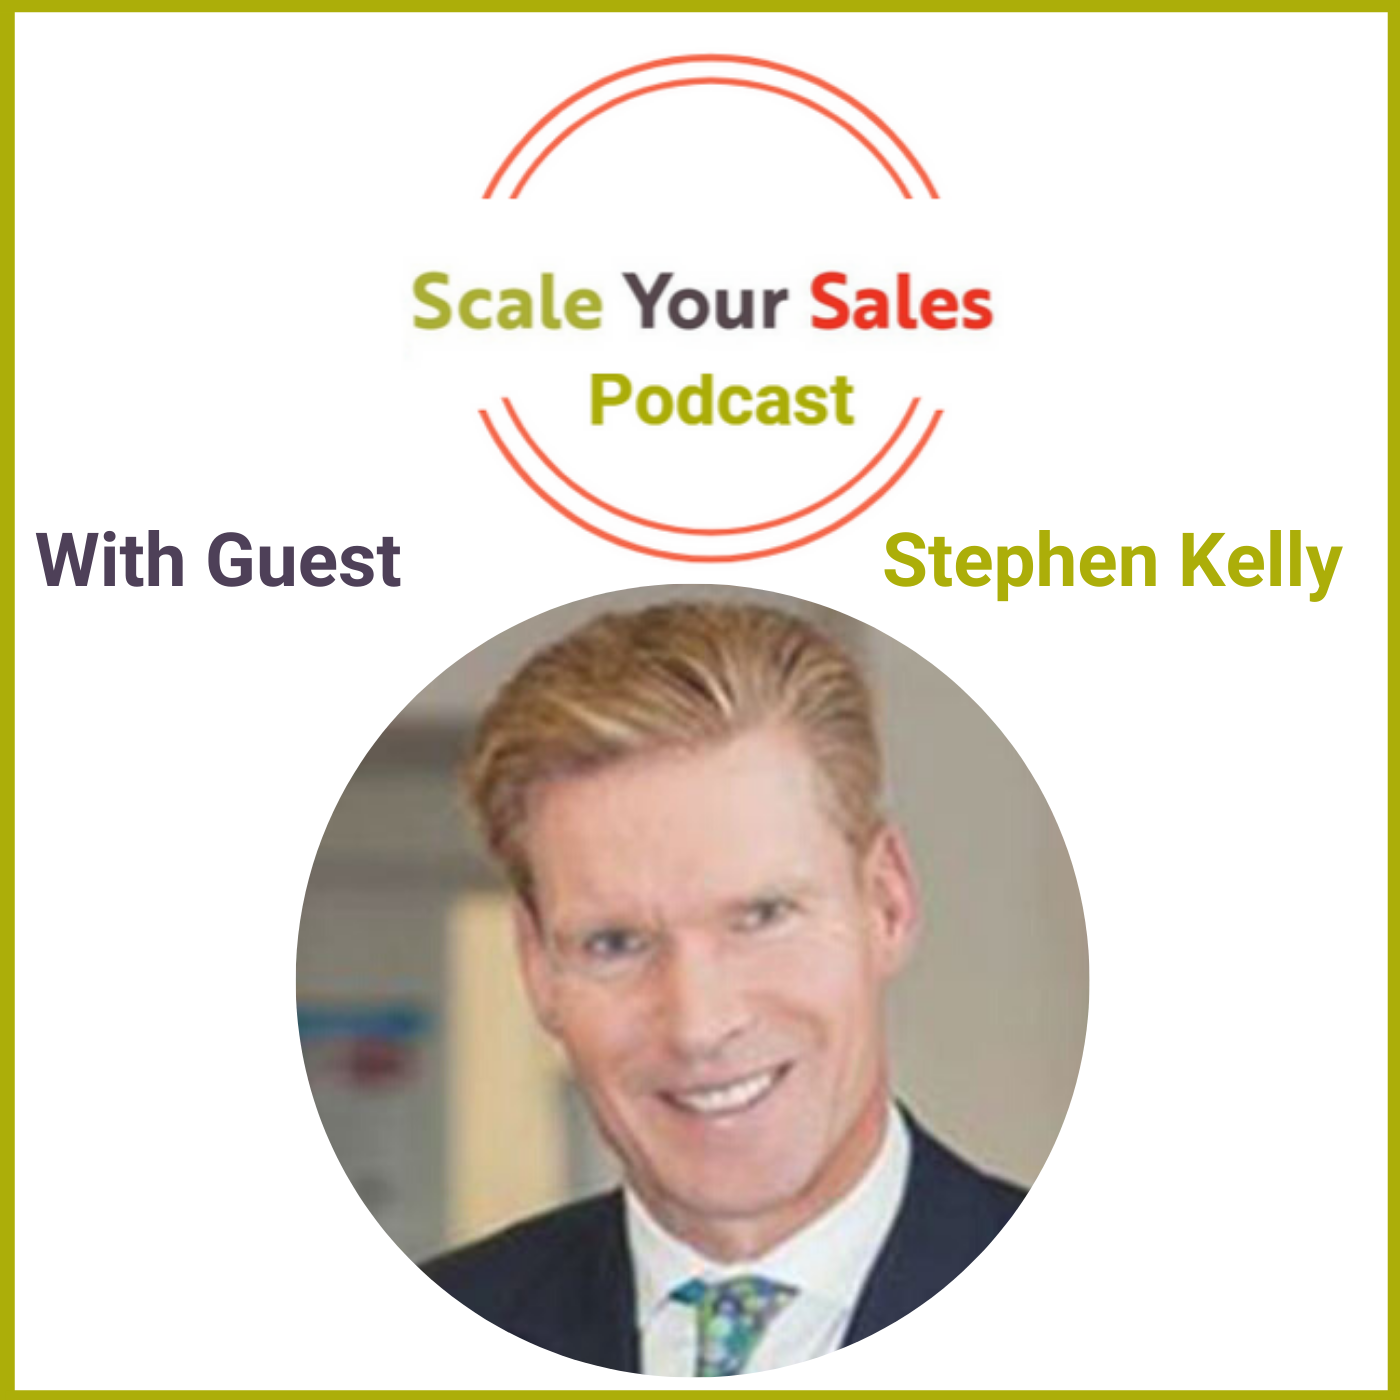 Episode 008 - What Stephen Kelly says on Customer Obsession and CEO's Serving a Bigger Purpose